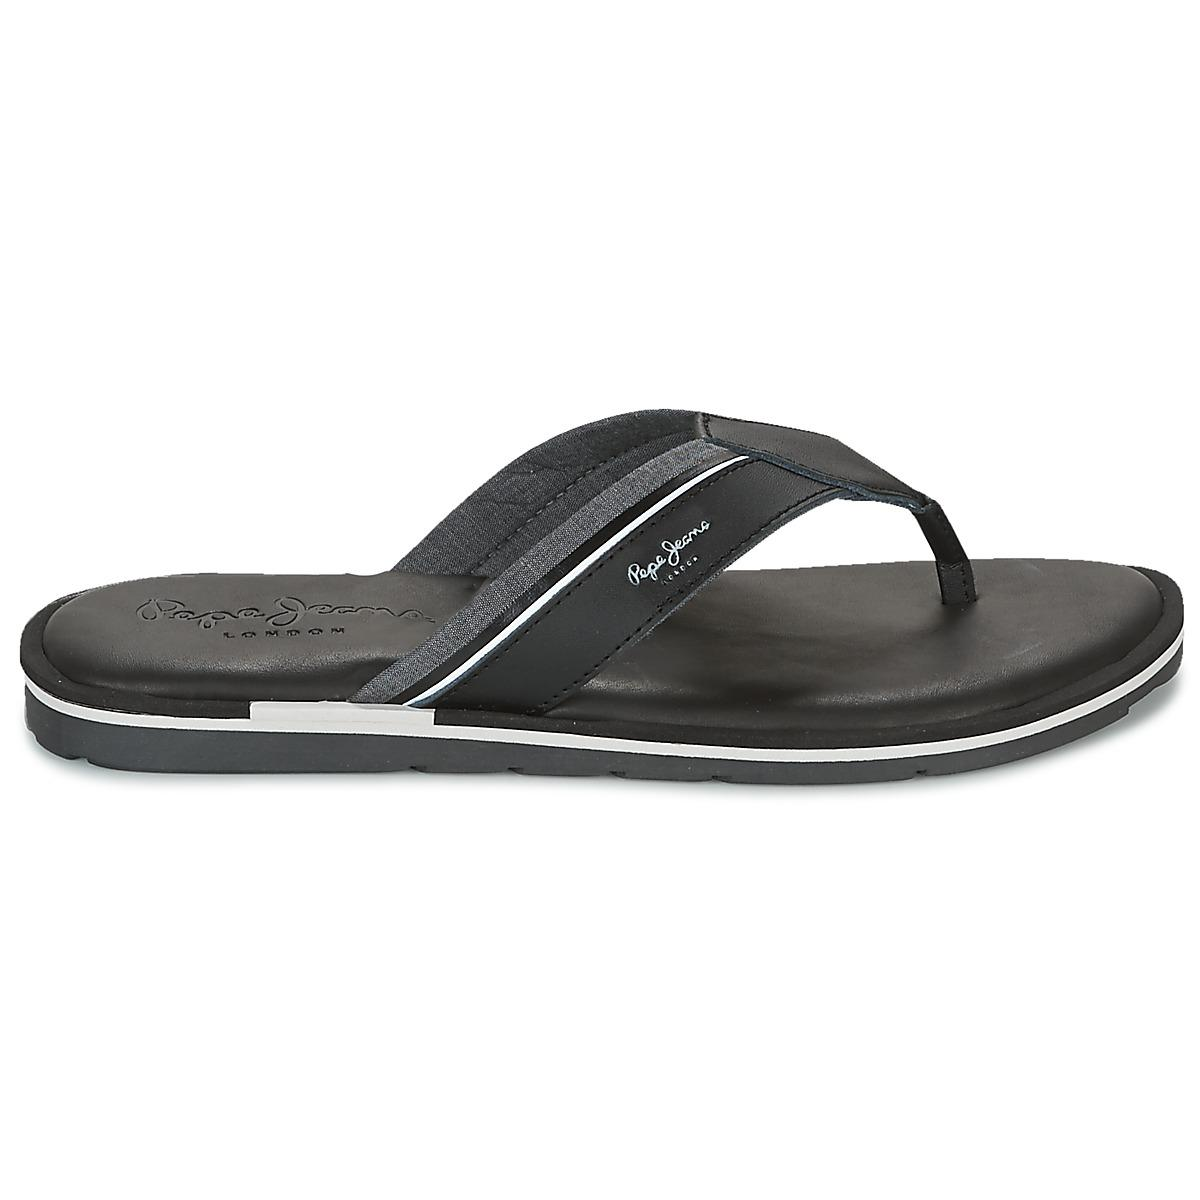 a35068c36a3a Pepe Jeans - Black Barrel Fabric Flip Flops   Sandals (shoes) for Men -.  View fullscreen